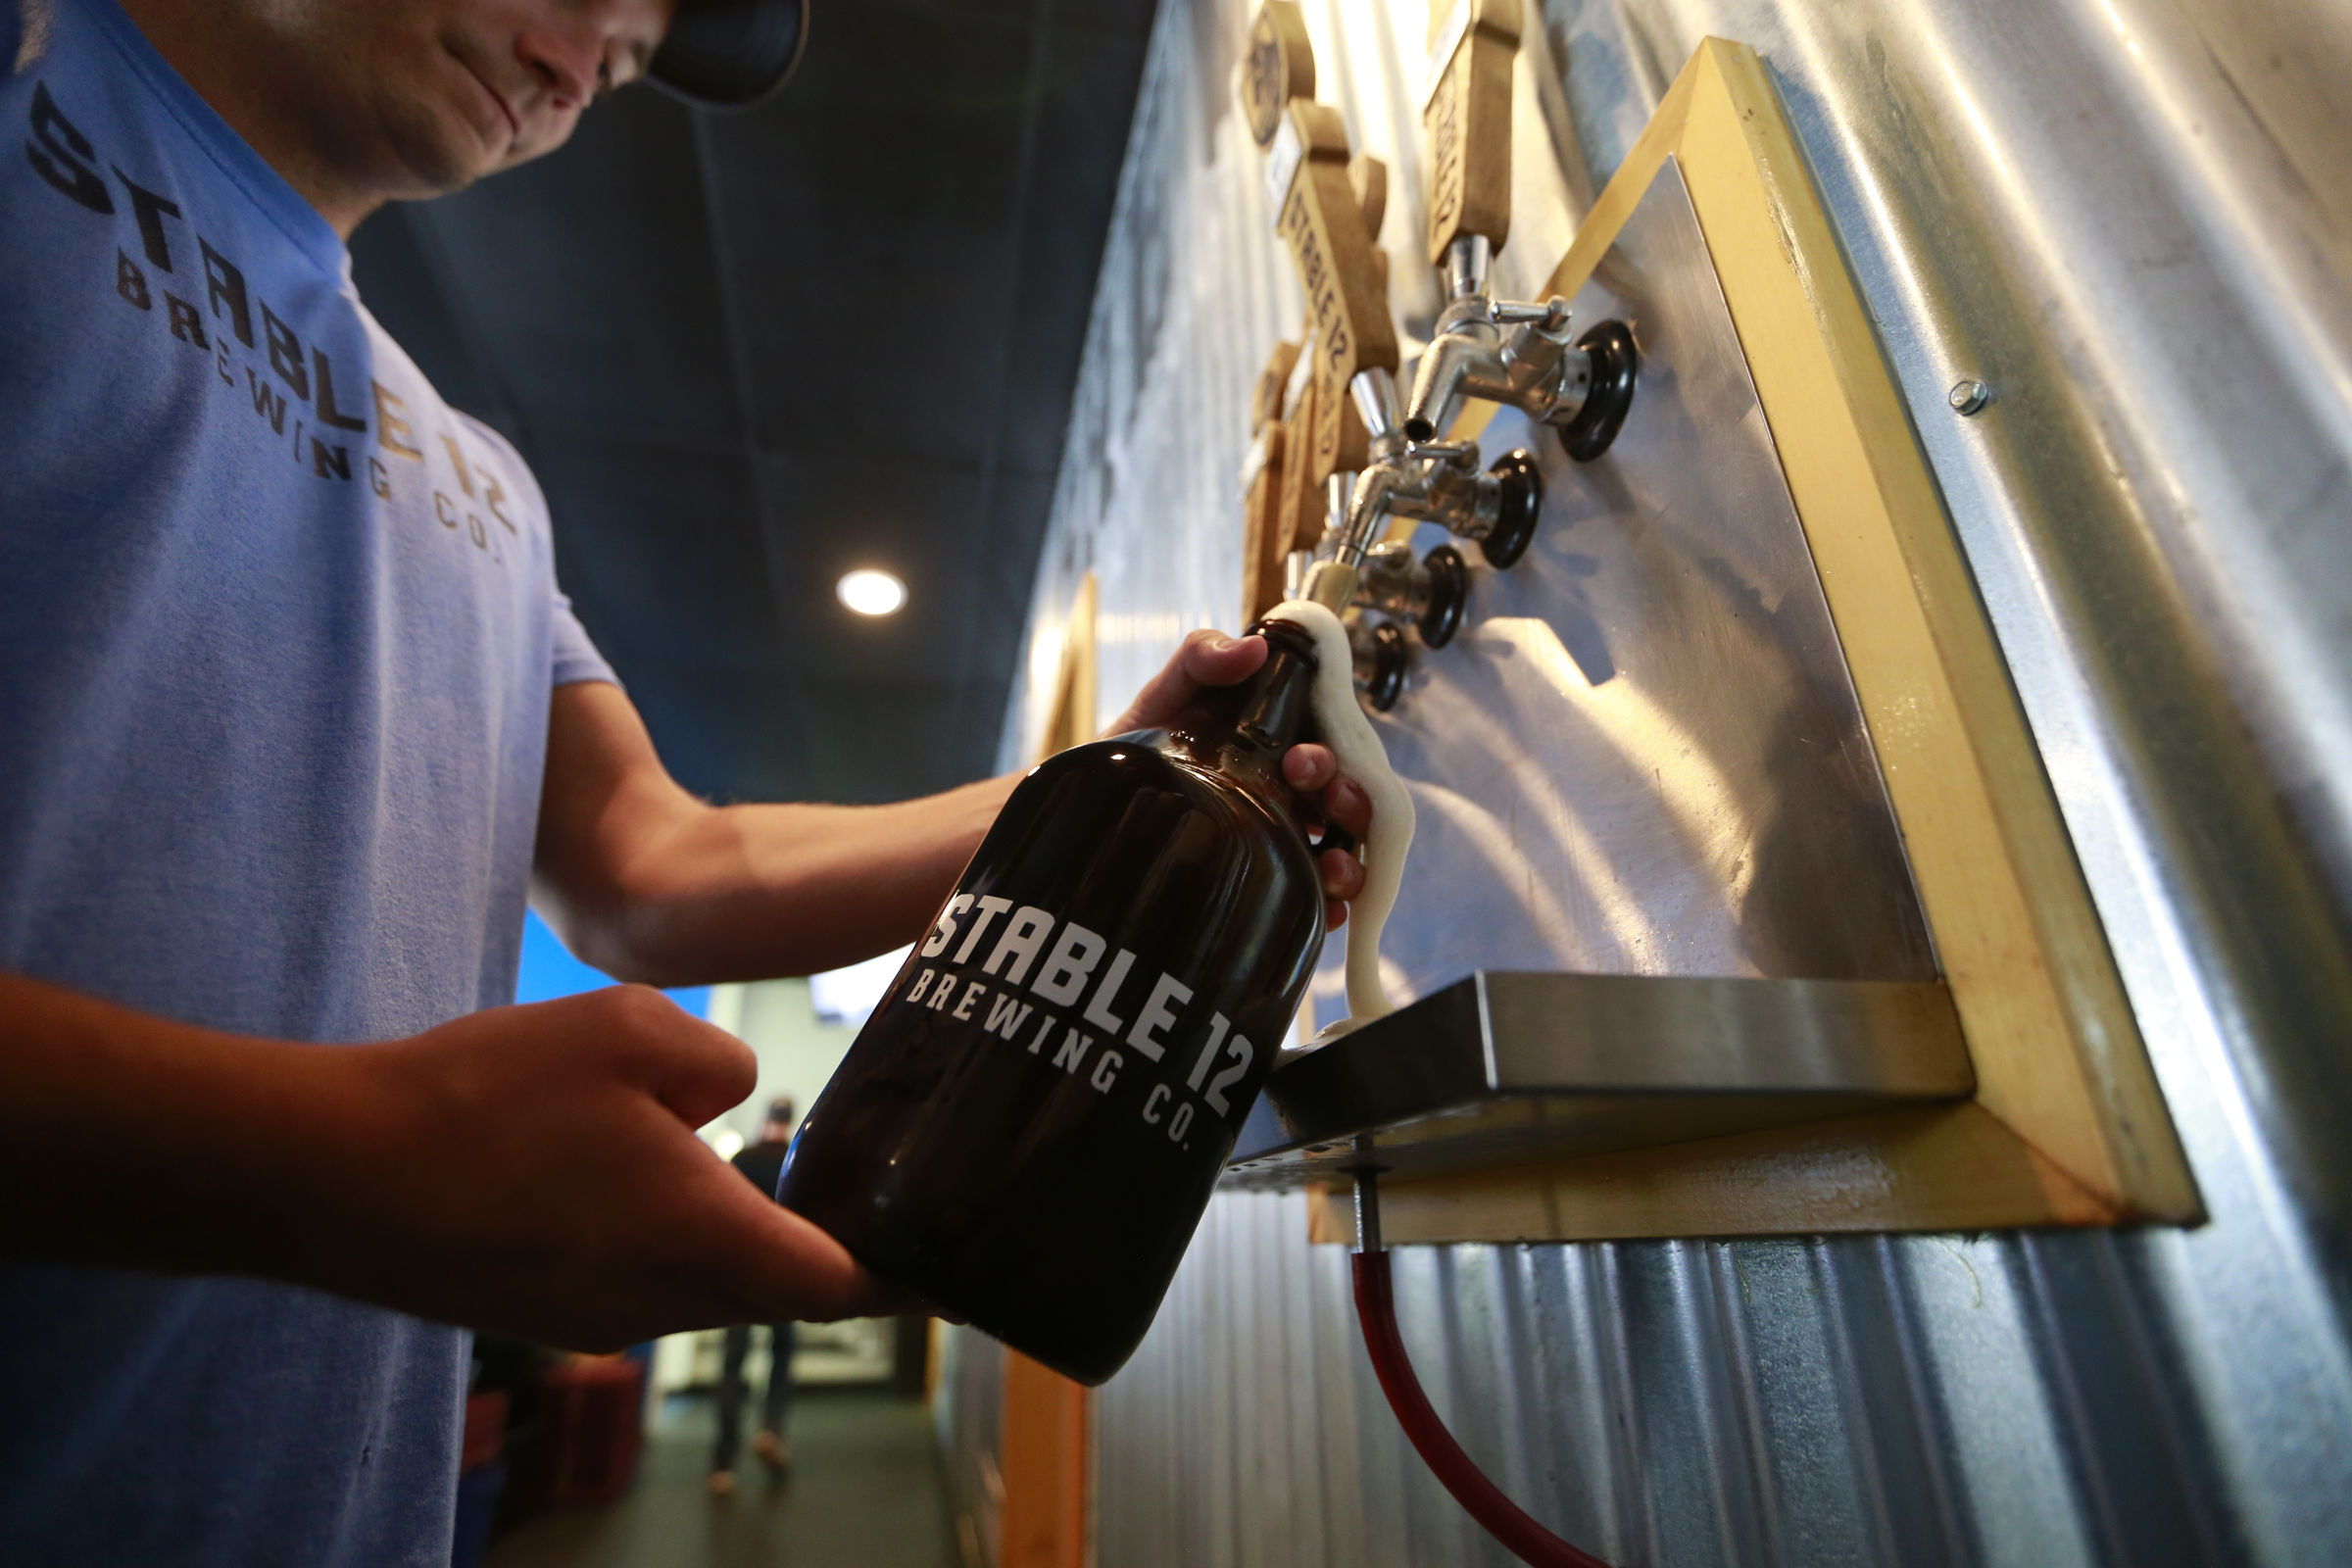 A growler is poured at Stable 12 in Phoenixville.